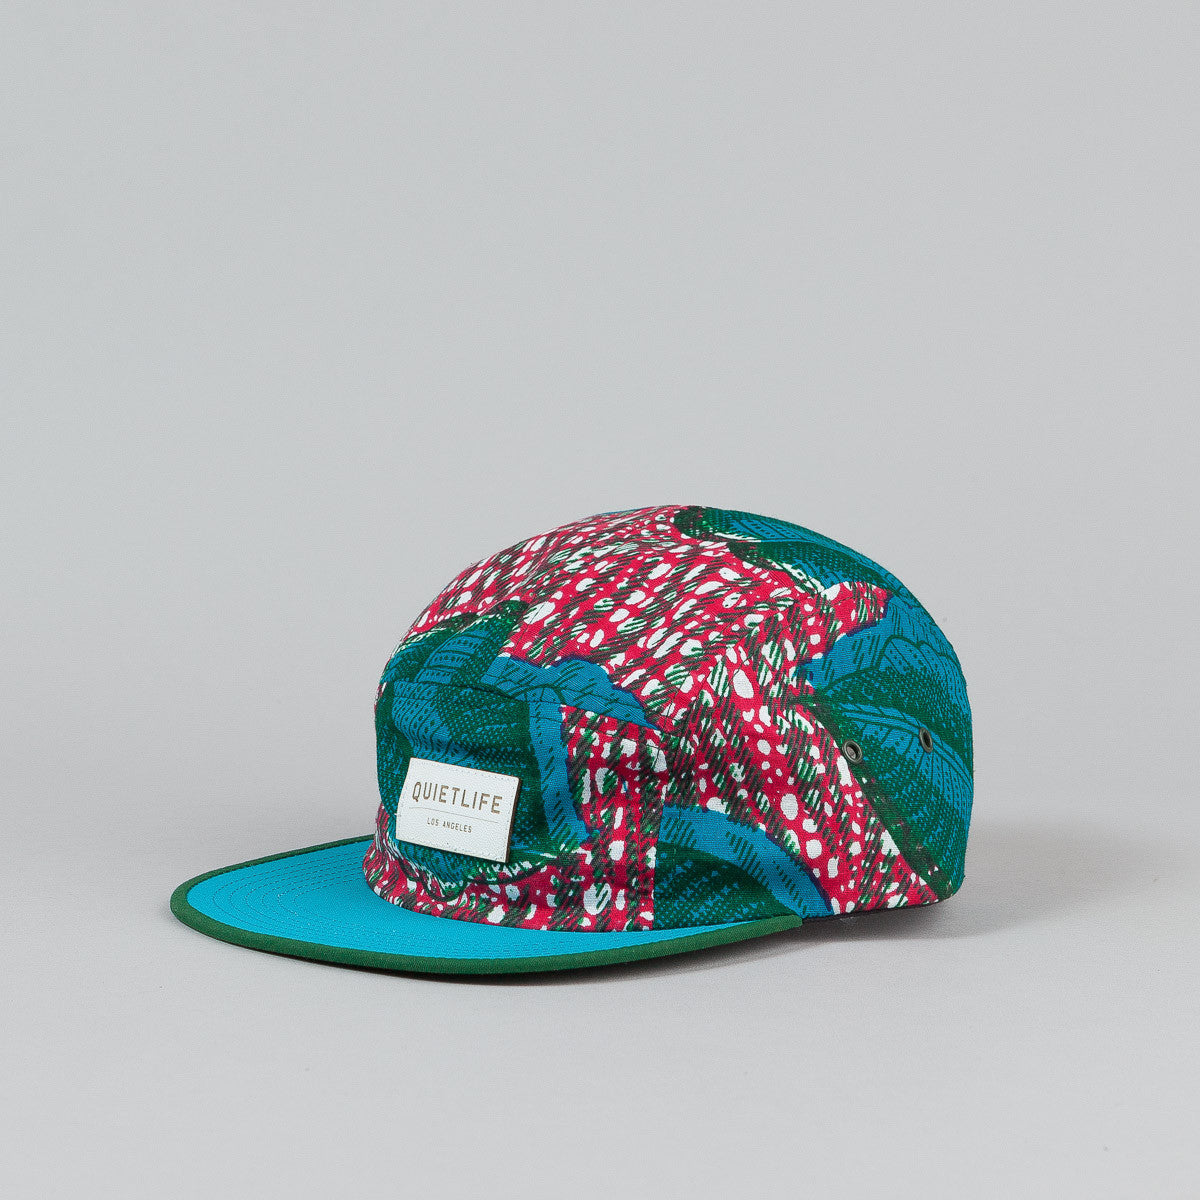 The Quiet Life Tropical 5 Panel Cap